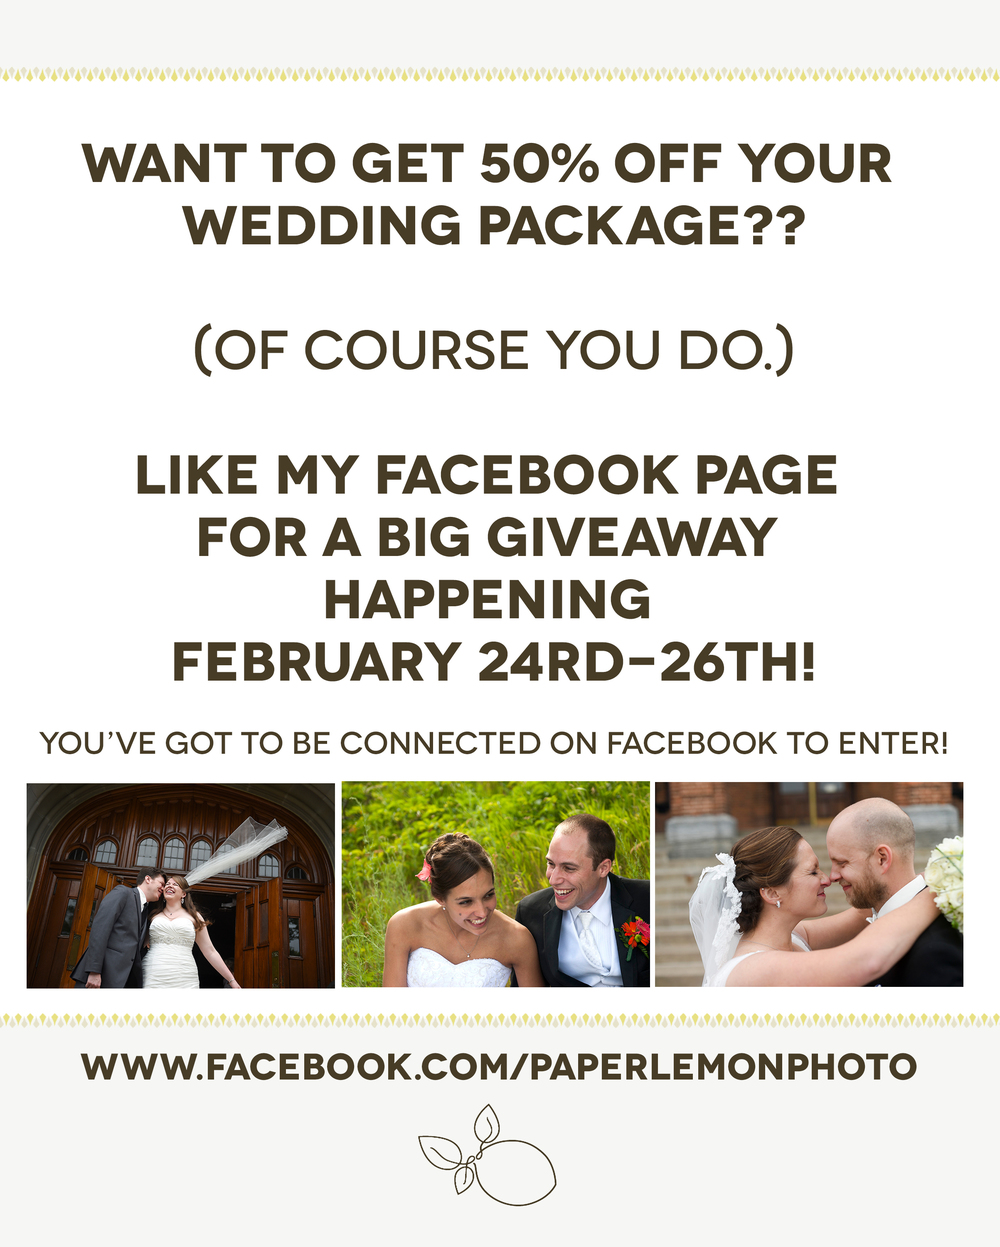 50% off blurb 2015 wedding showcases.jpg